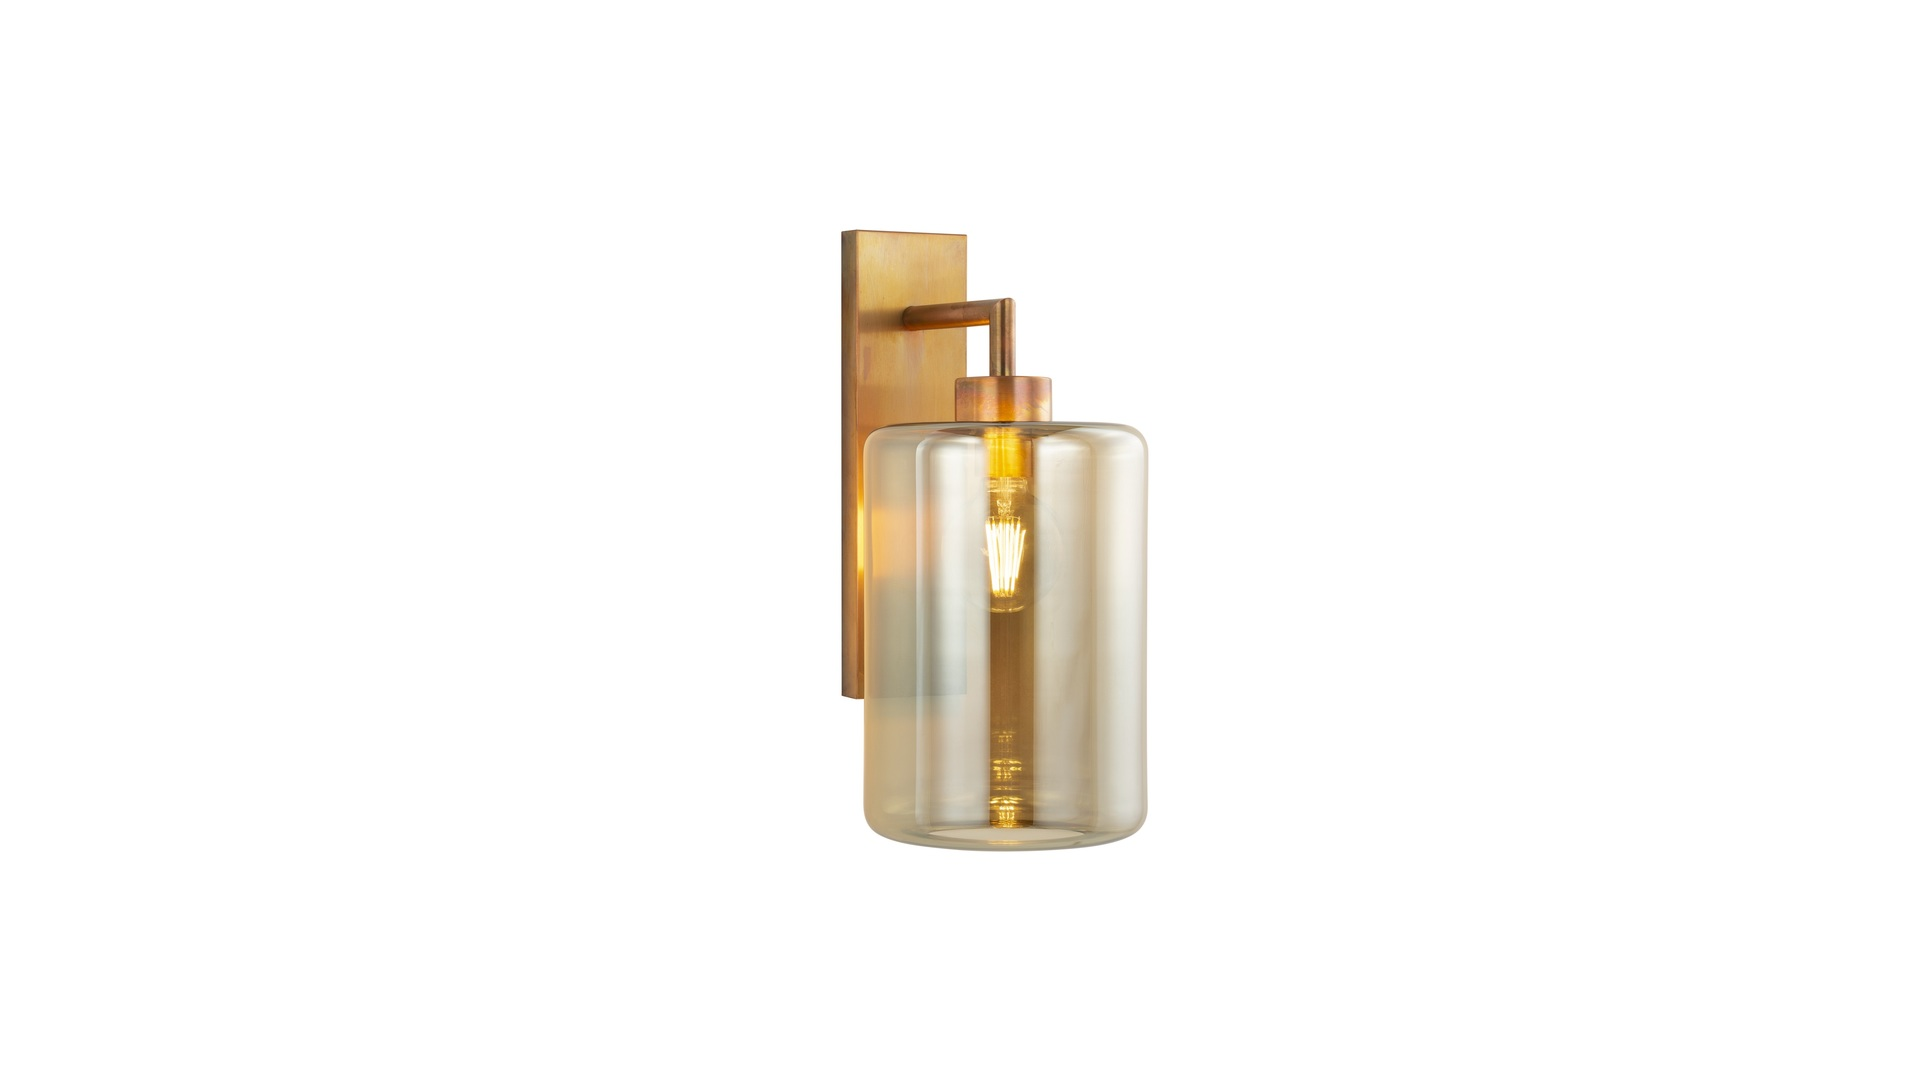 Louise-collection_wall-light_LOW60BRBUR-GLLOBRO22_brass-burnished-finish_white-background5000.jpg